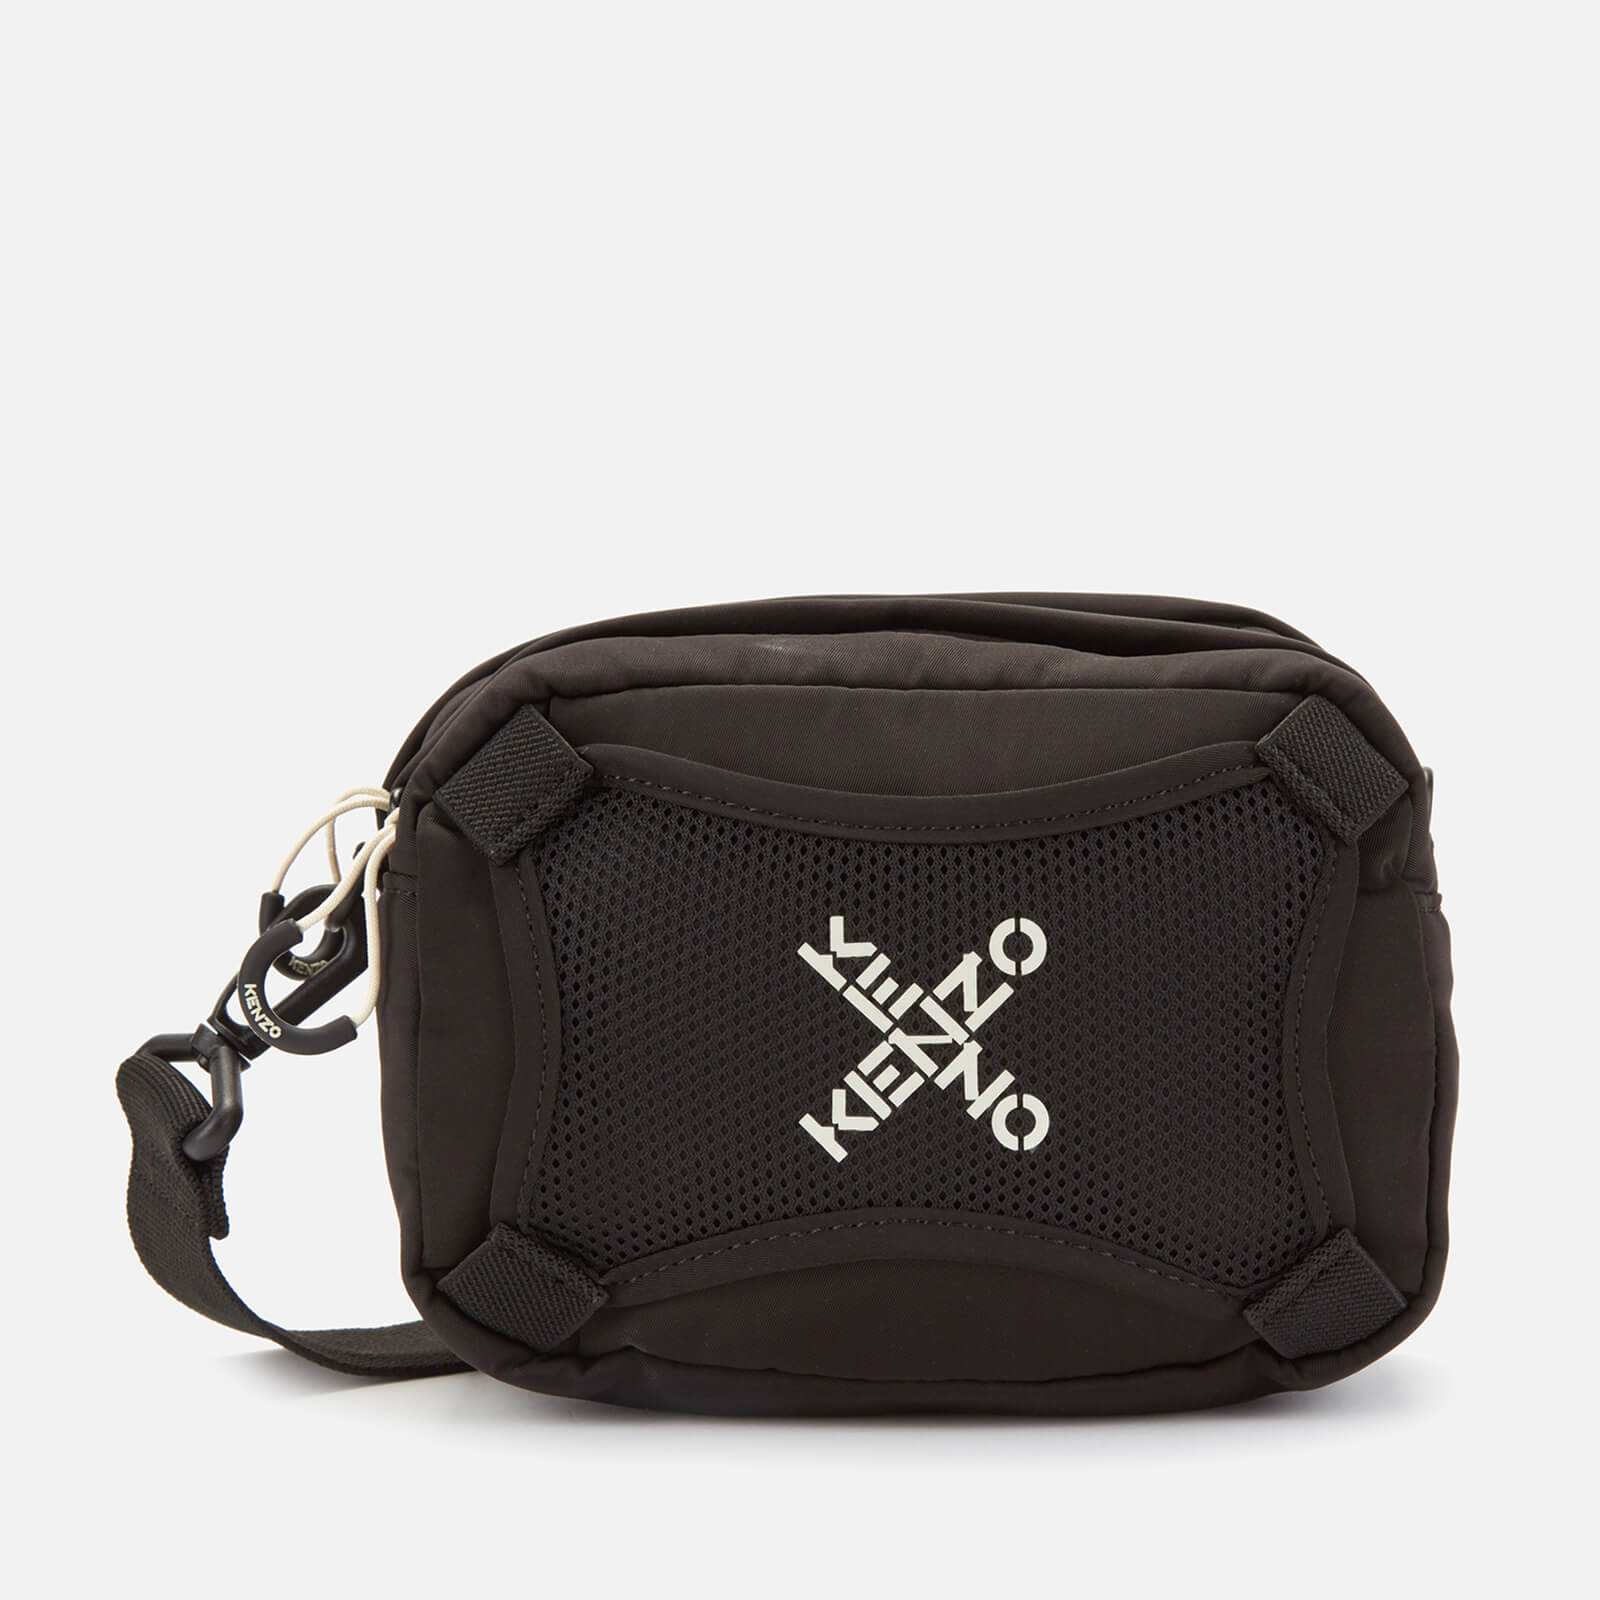 KENZO Men's Sport Cross Body Bag - Black from Kenzo